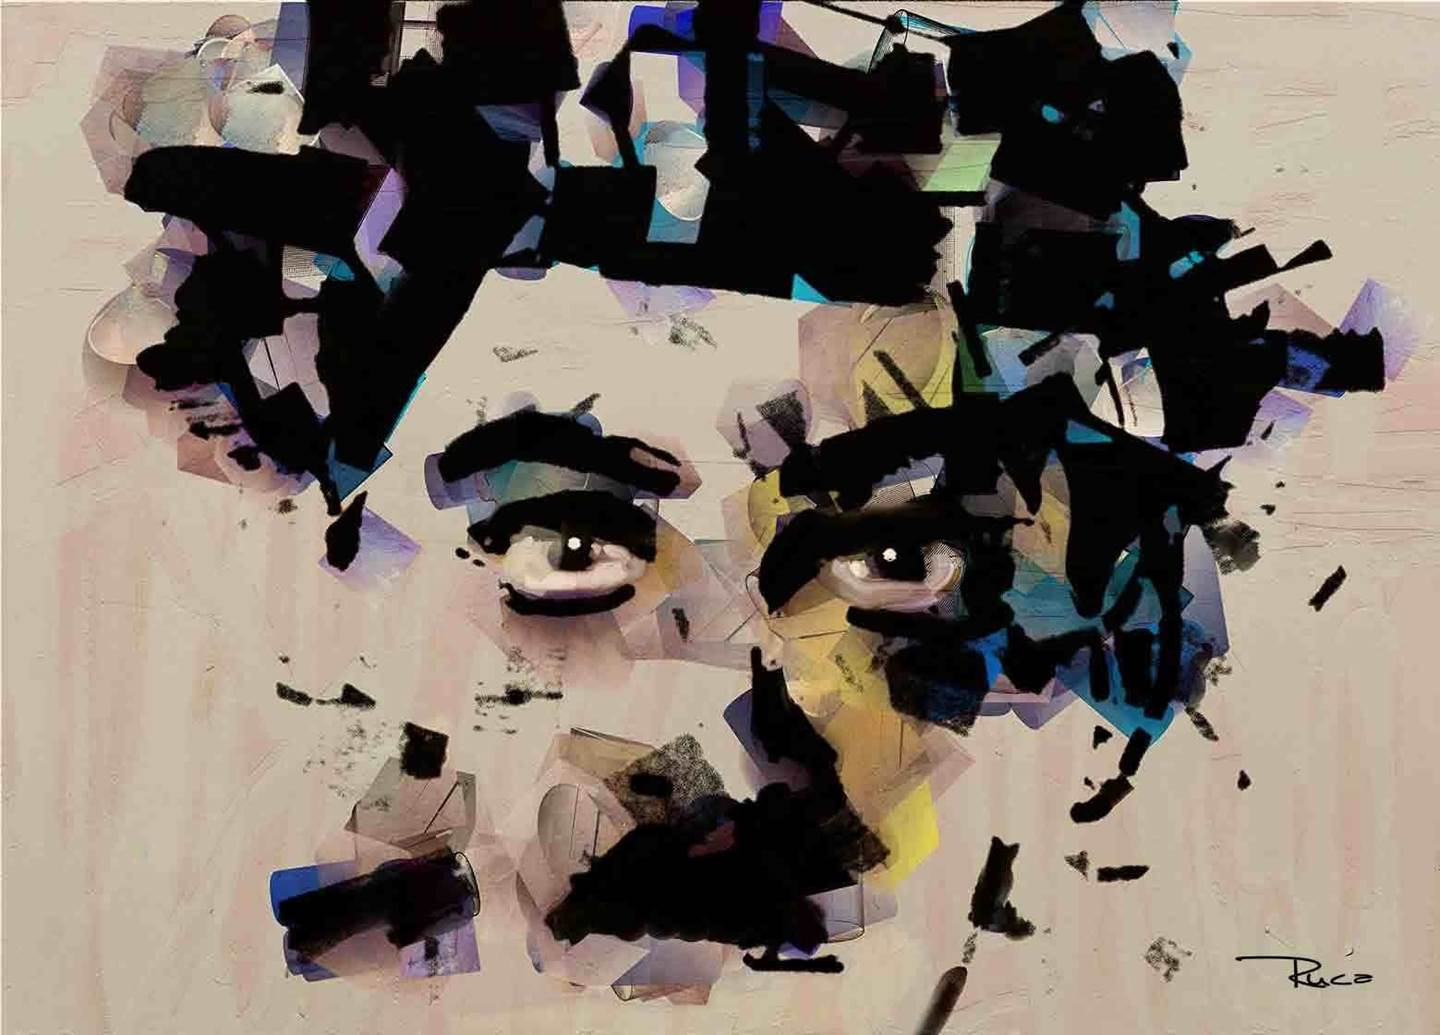 Charlie Chaplin, original Abstract Mixed Technique Painting by Rui Mendes (Ruca)